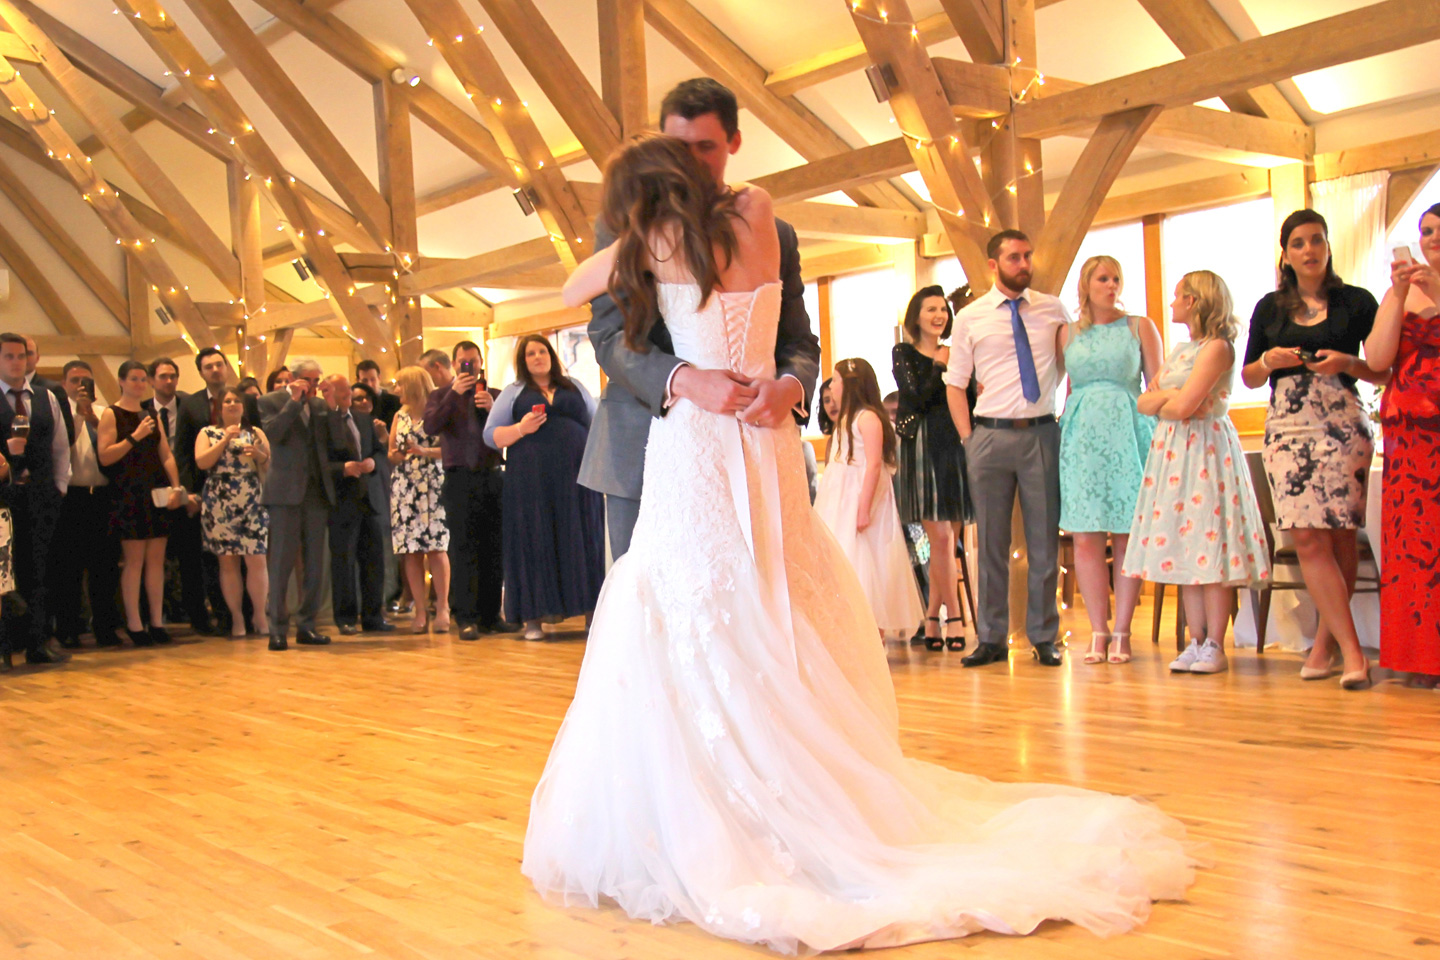 The newlyweds perform their first dance in front of guests at Bassmead Manor Barns wedding venue in Cambridgeshire